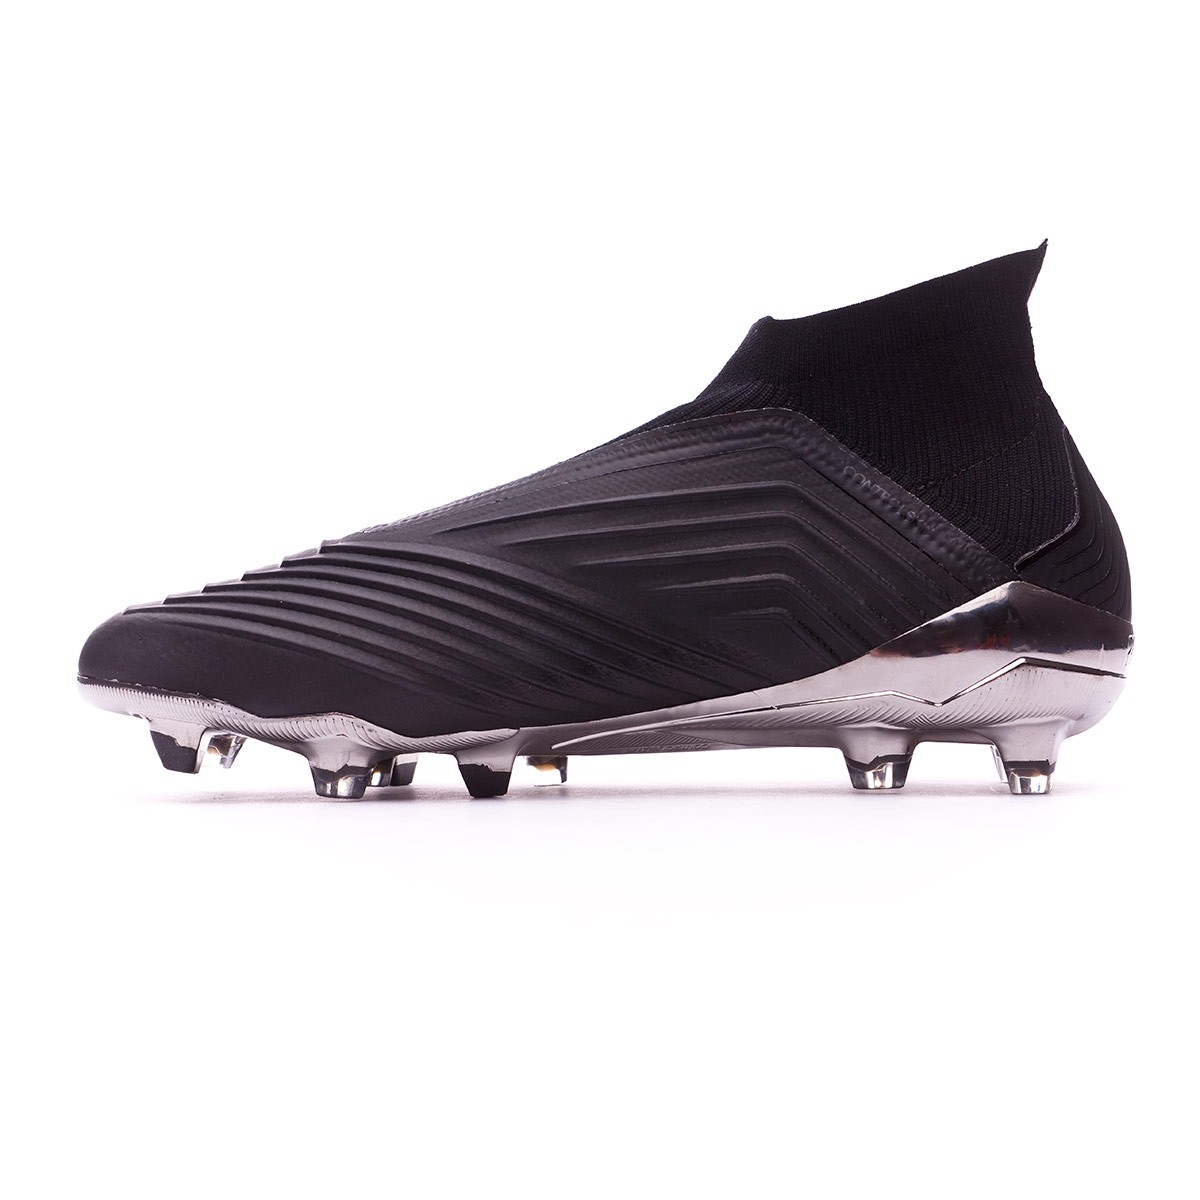 97a1379c9bfd Football Boots adidas Predator 18+ FG Core black-Real coral - Football  store Fútbol Emotion